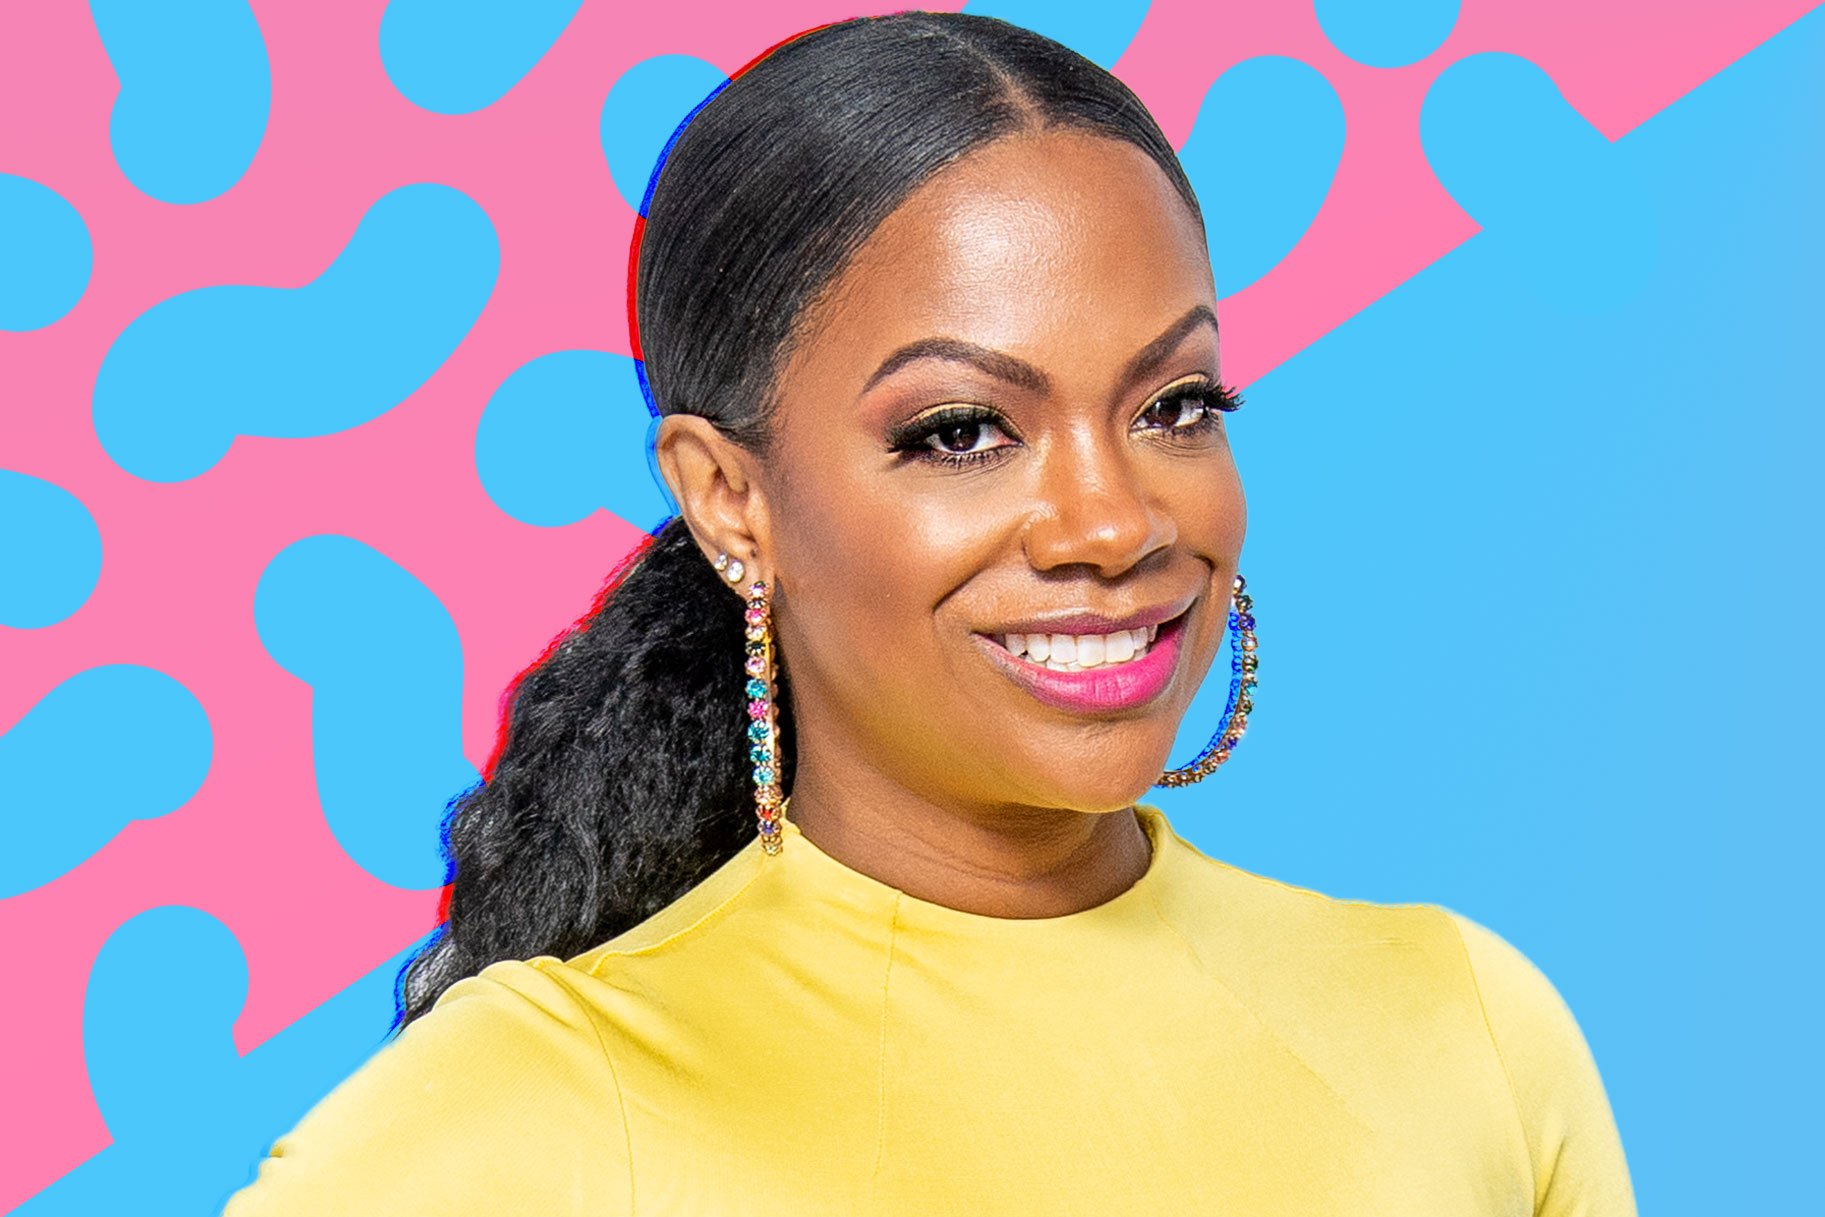 Kandi Burruss' Photo With Blaze Tucker Makes Fans Laugh – Check Out The Funny Caption